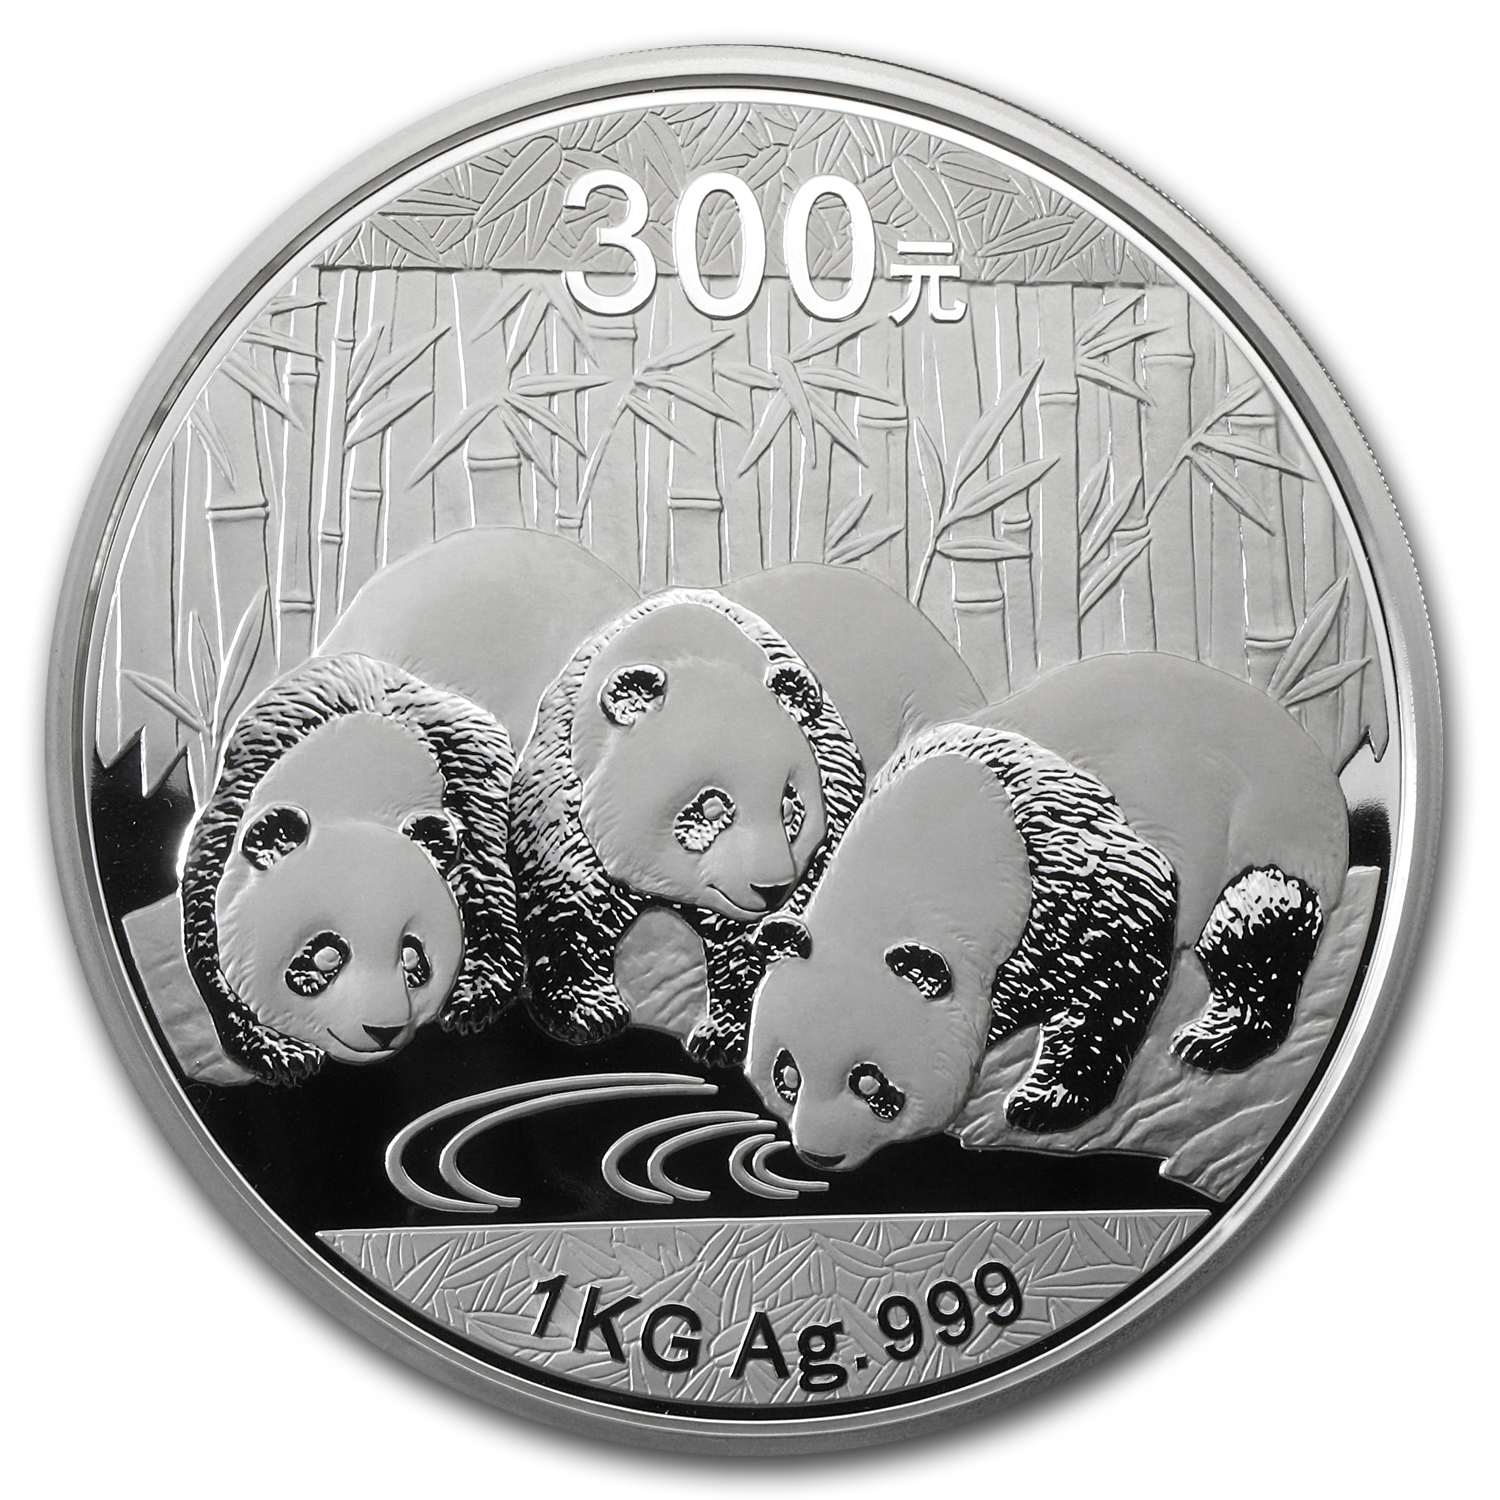 2013 China 1 kilo Silver Panda Proof (w/Box & COA)